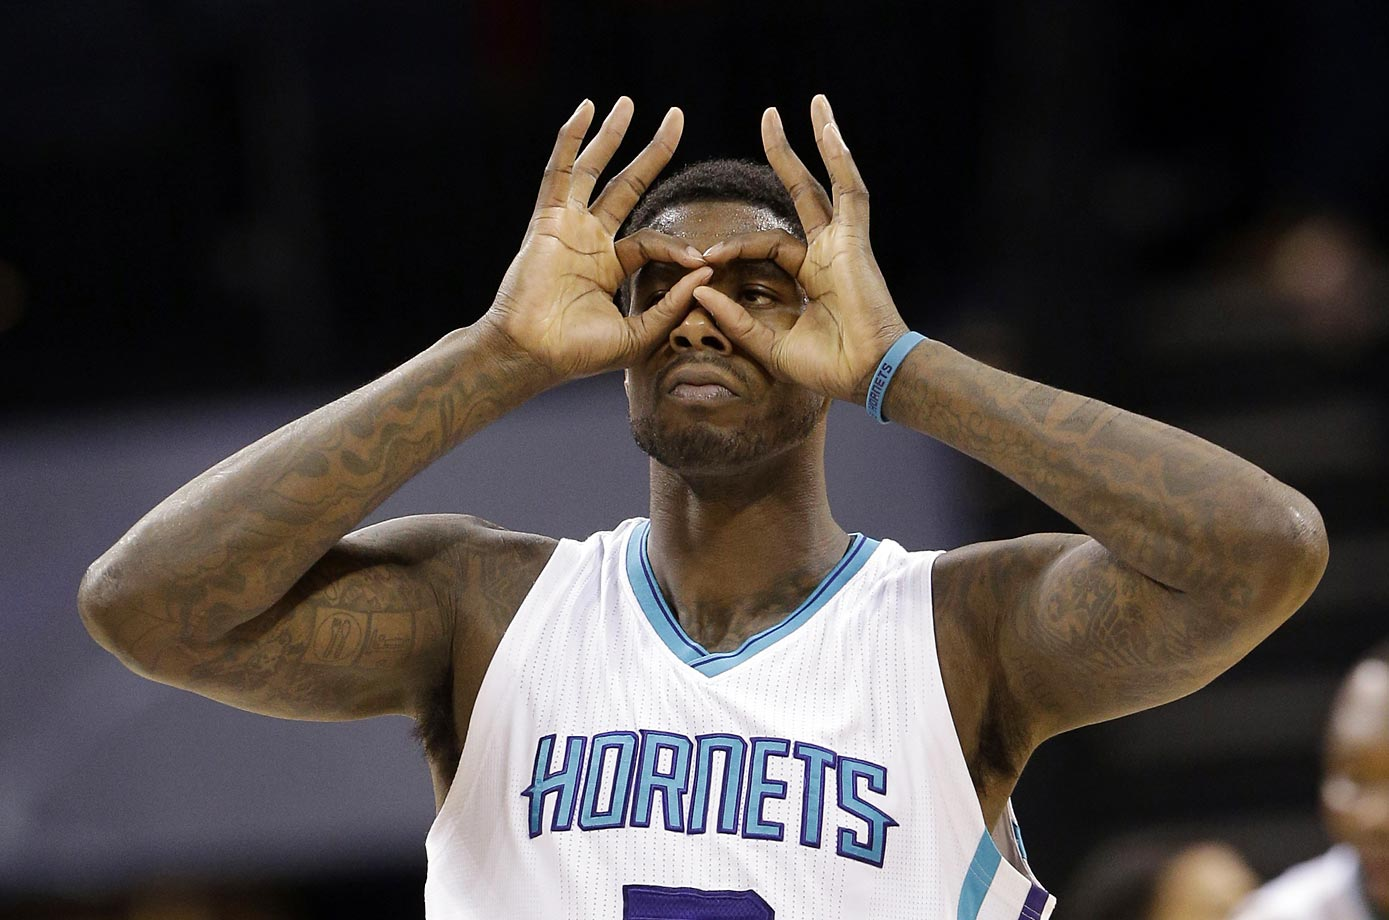 Marvin Williams of the Charlotte Hornets makes a 3-point basket against the Washington Wizards. The Hornets won 94-87.